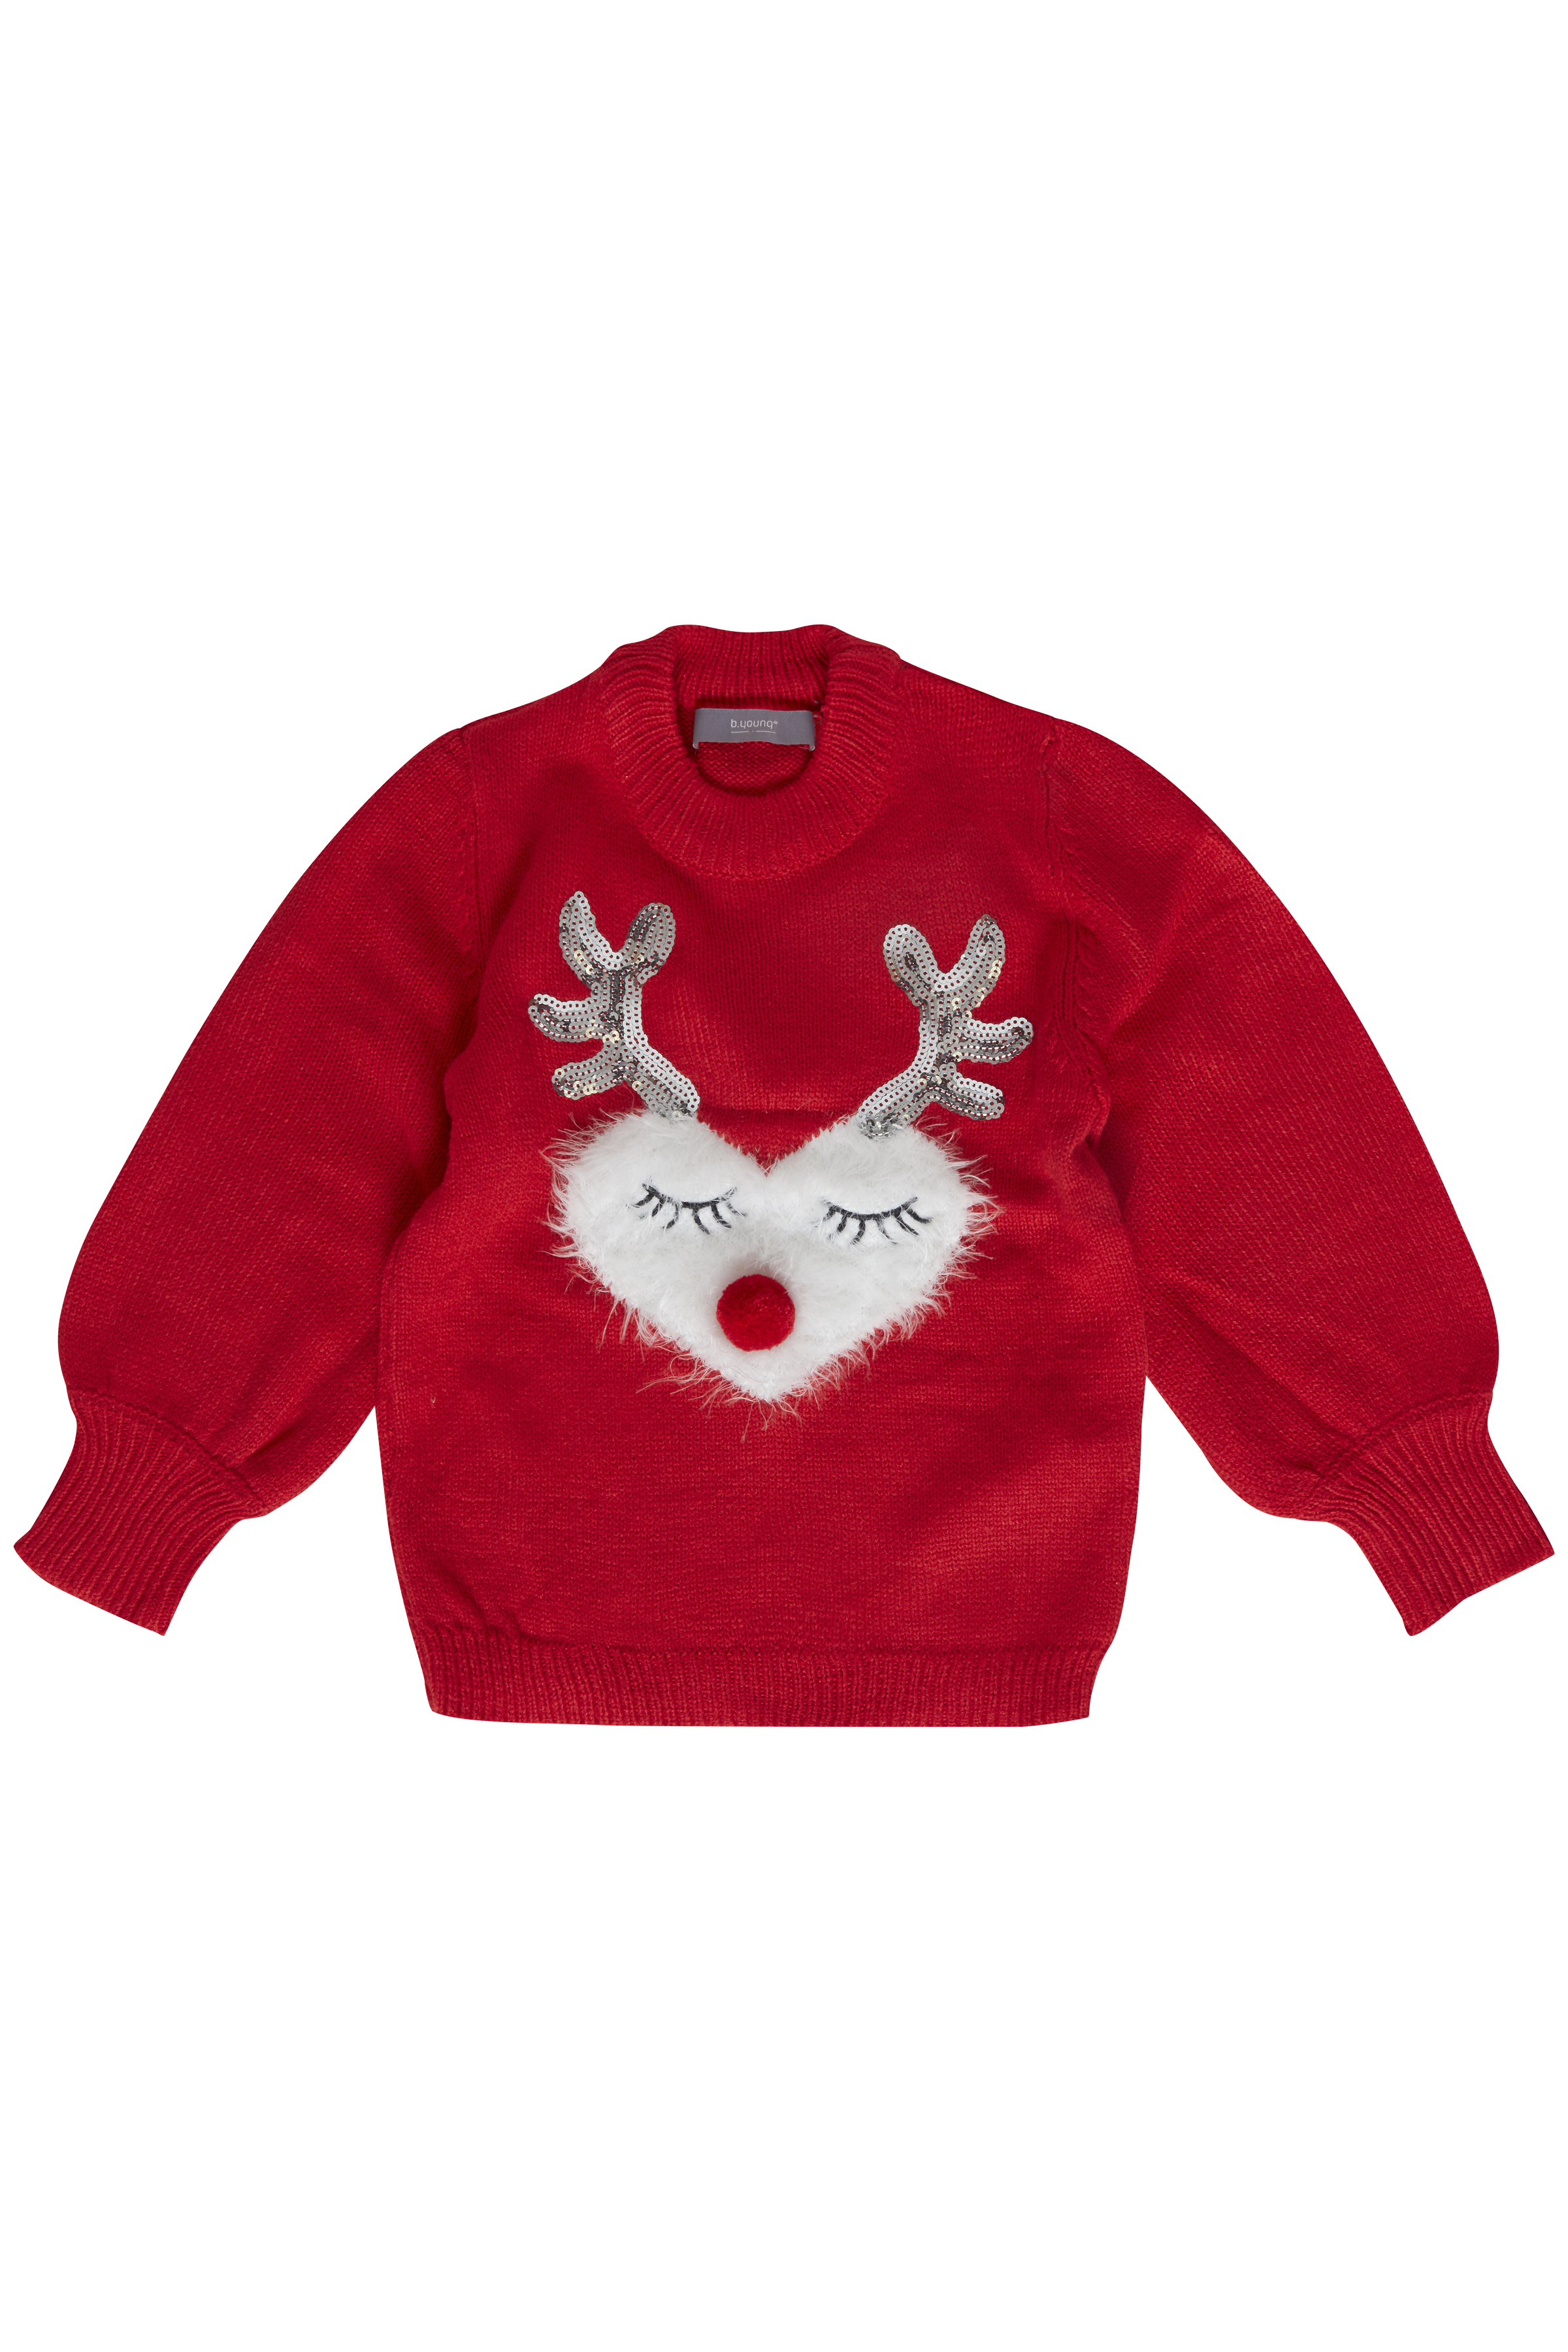 Chinese Red combi 2 Knitted pullover from b.young – Buy Chinese Red combi 2 Knitted pullover from size 92-134/140 here